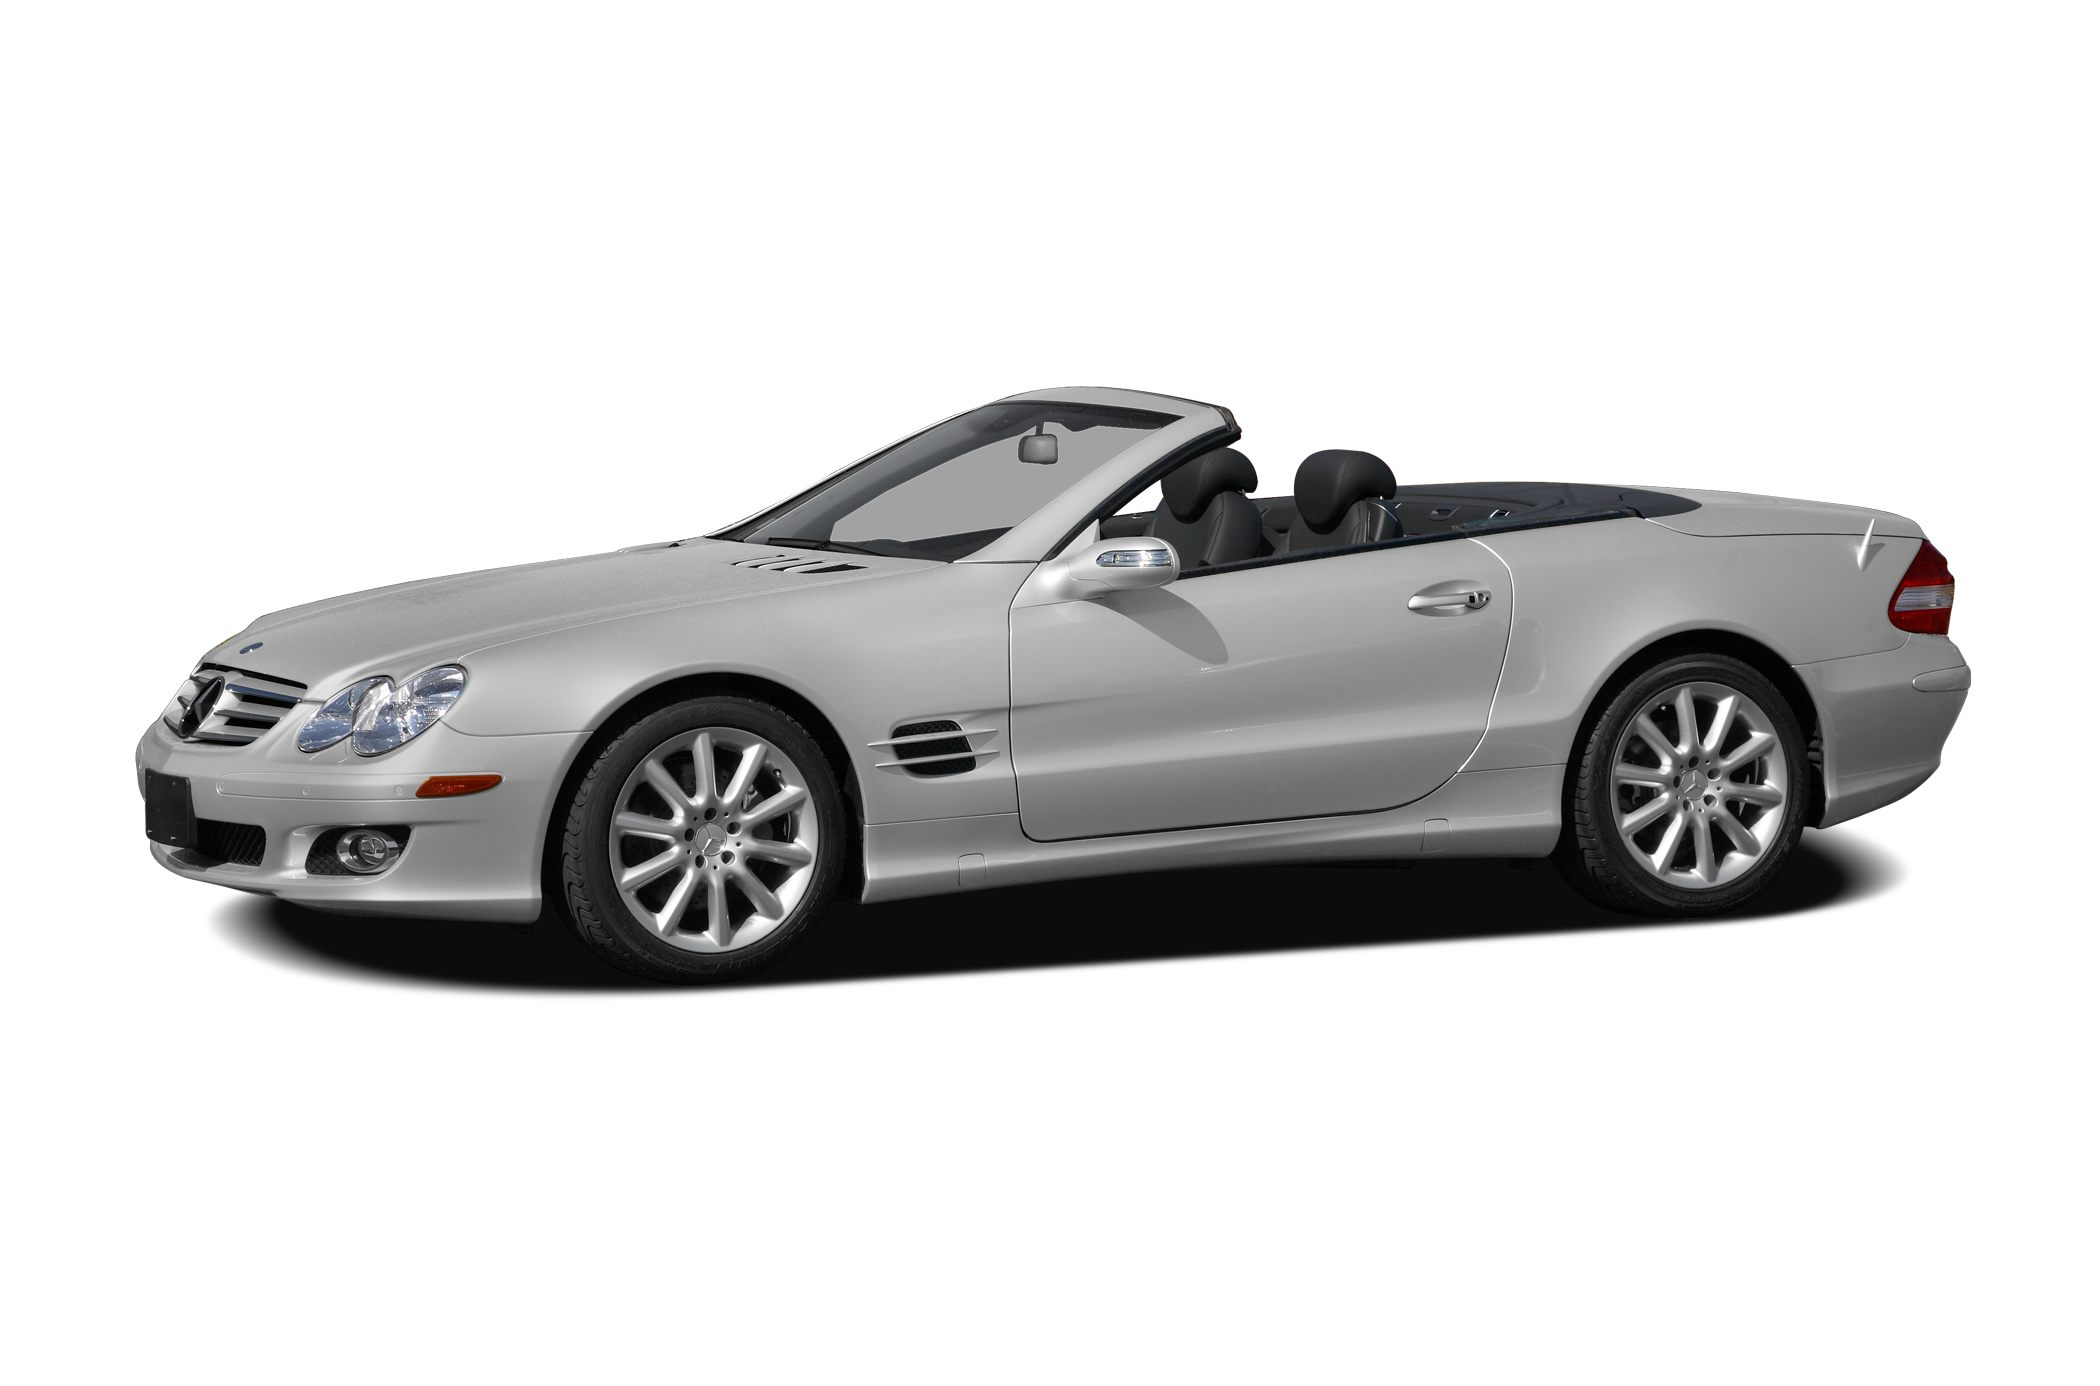 2007 Mercedes-Benz SL-Class SL550 Roadster Convertible for sale in Hawthorne for $23,988 with 116,176 miles